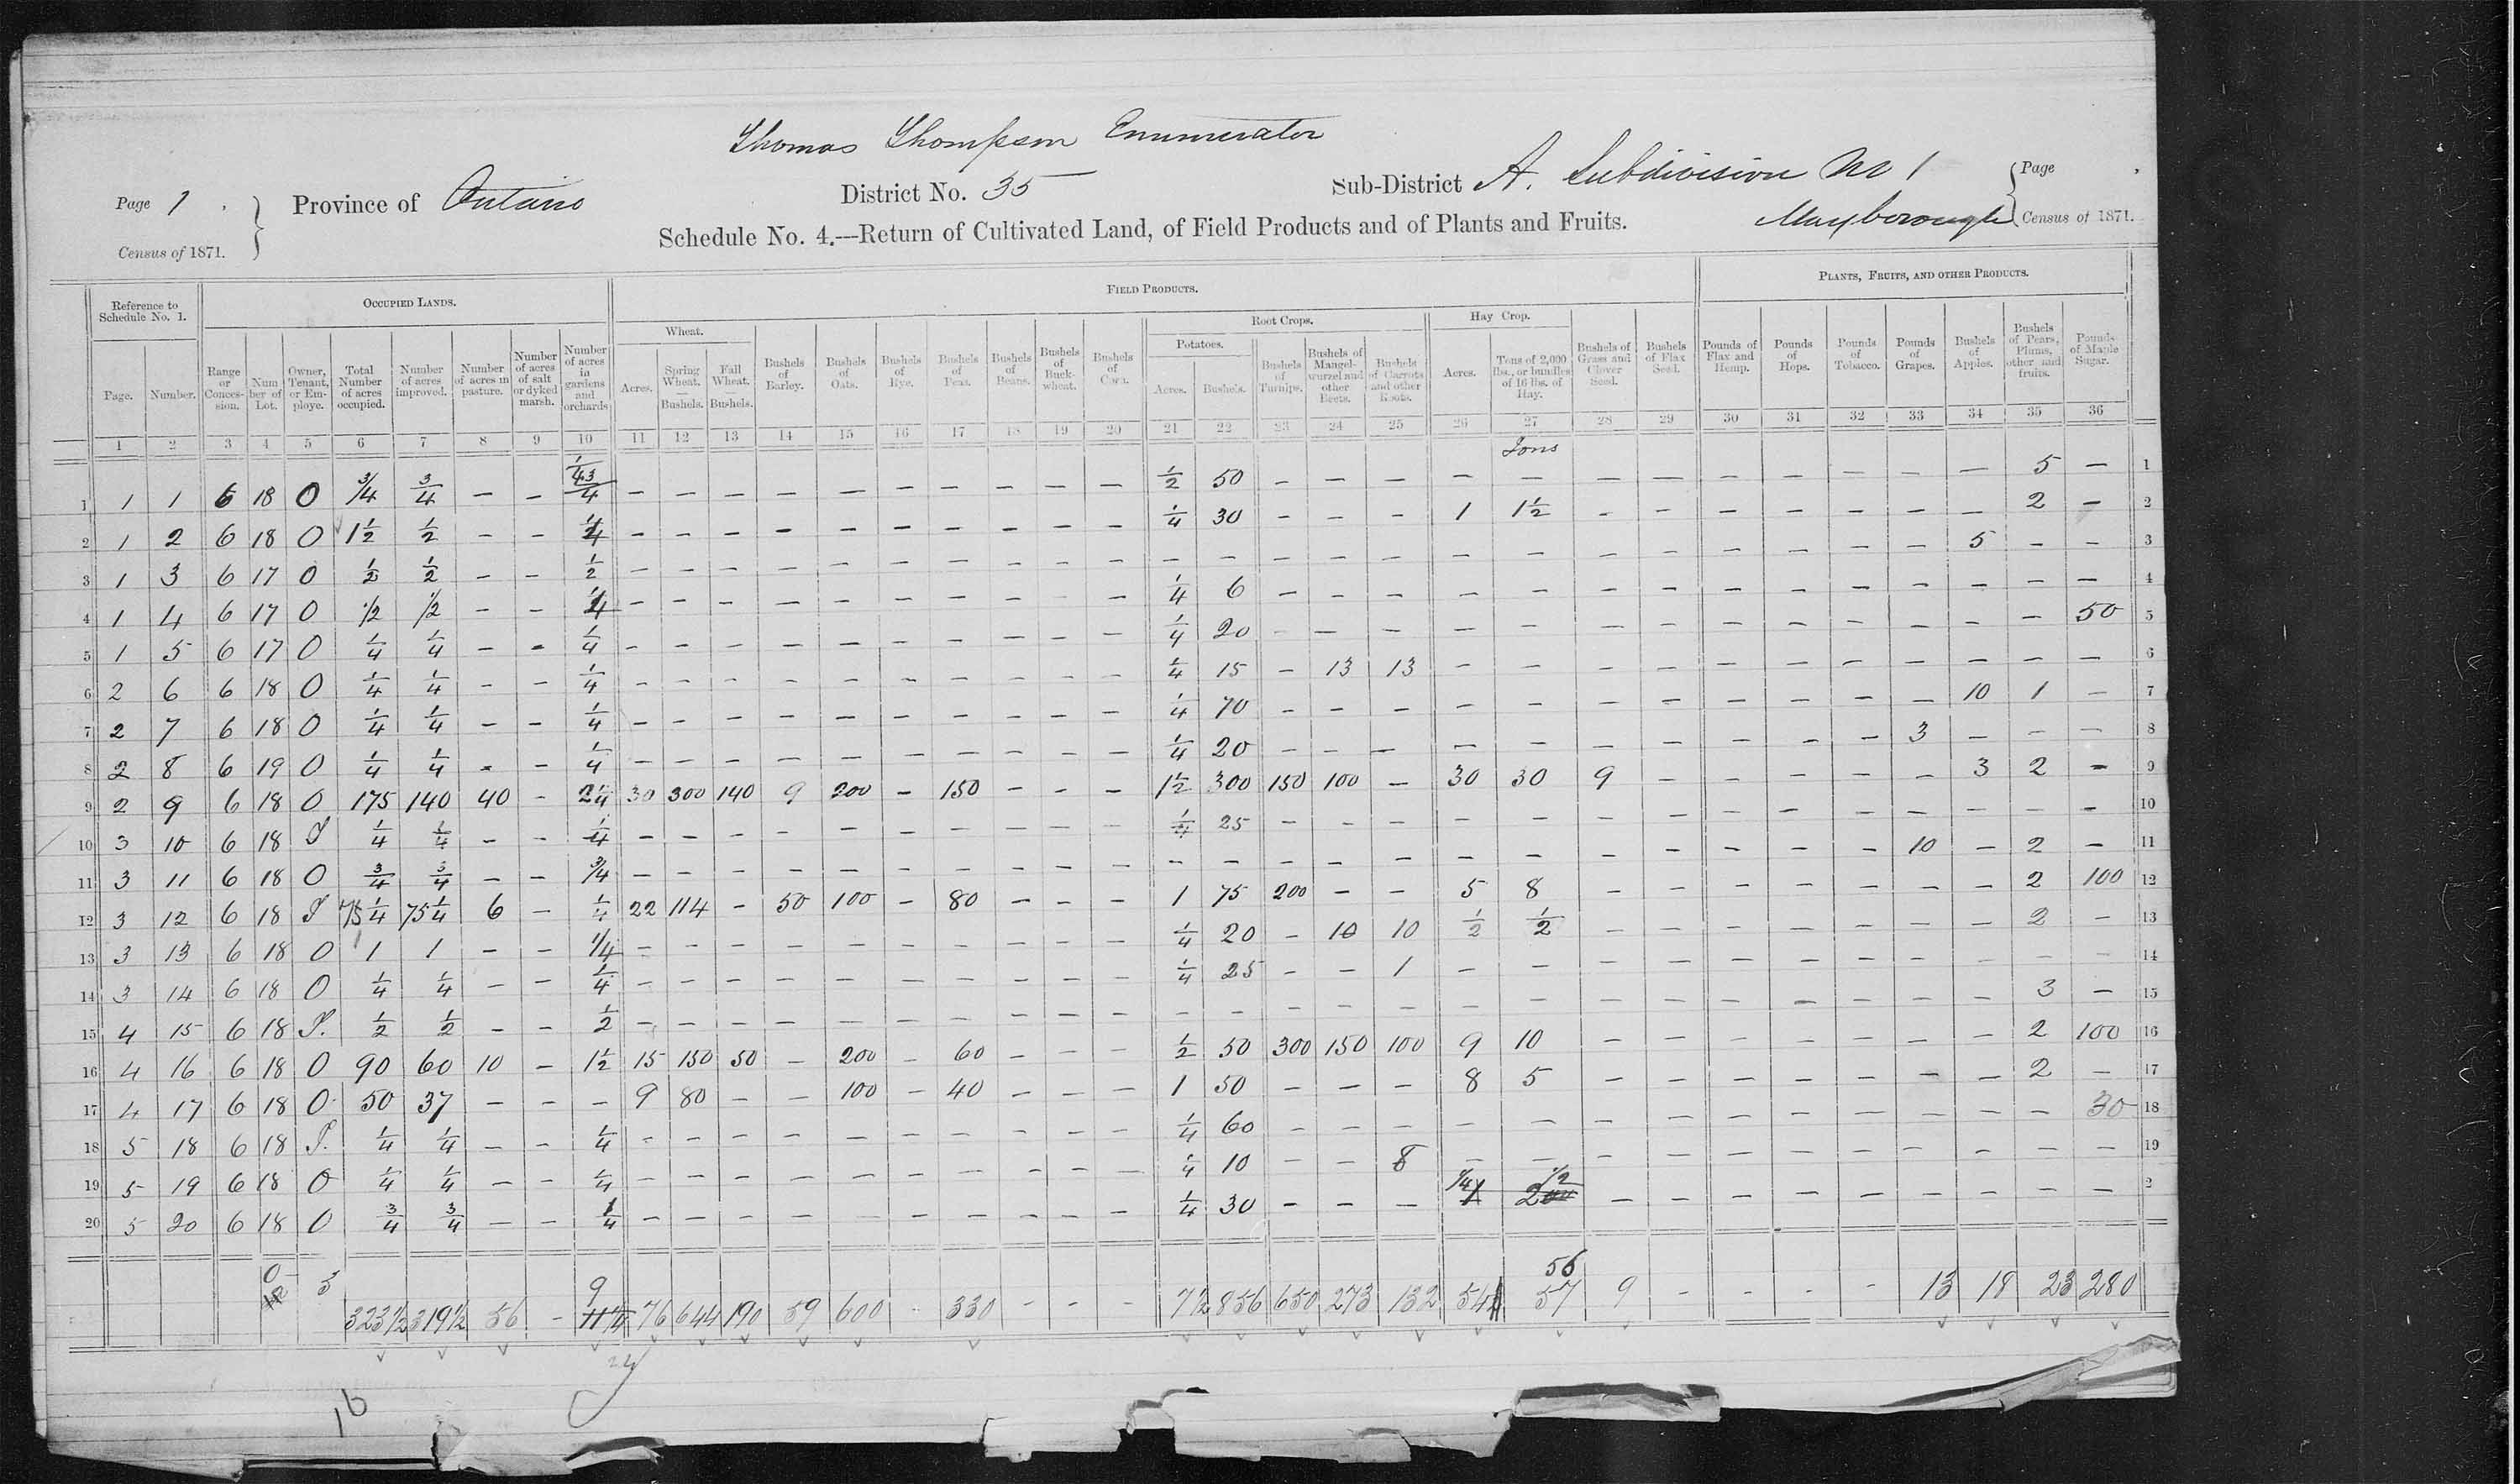 Title: Census of Canada, 1871 - Mikan Number: 142105 - Microform: c-9948